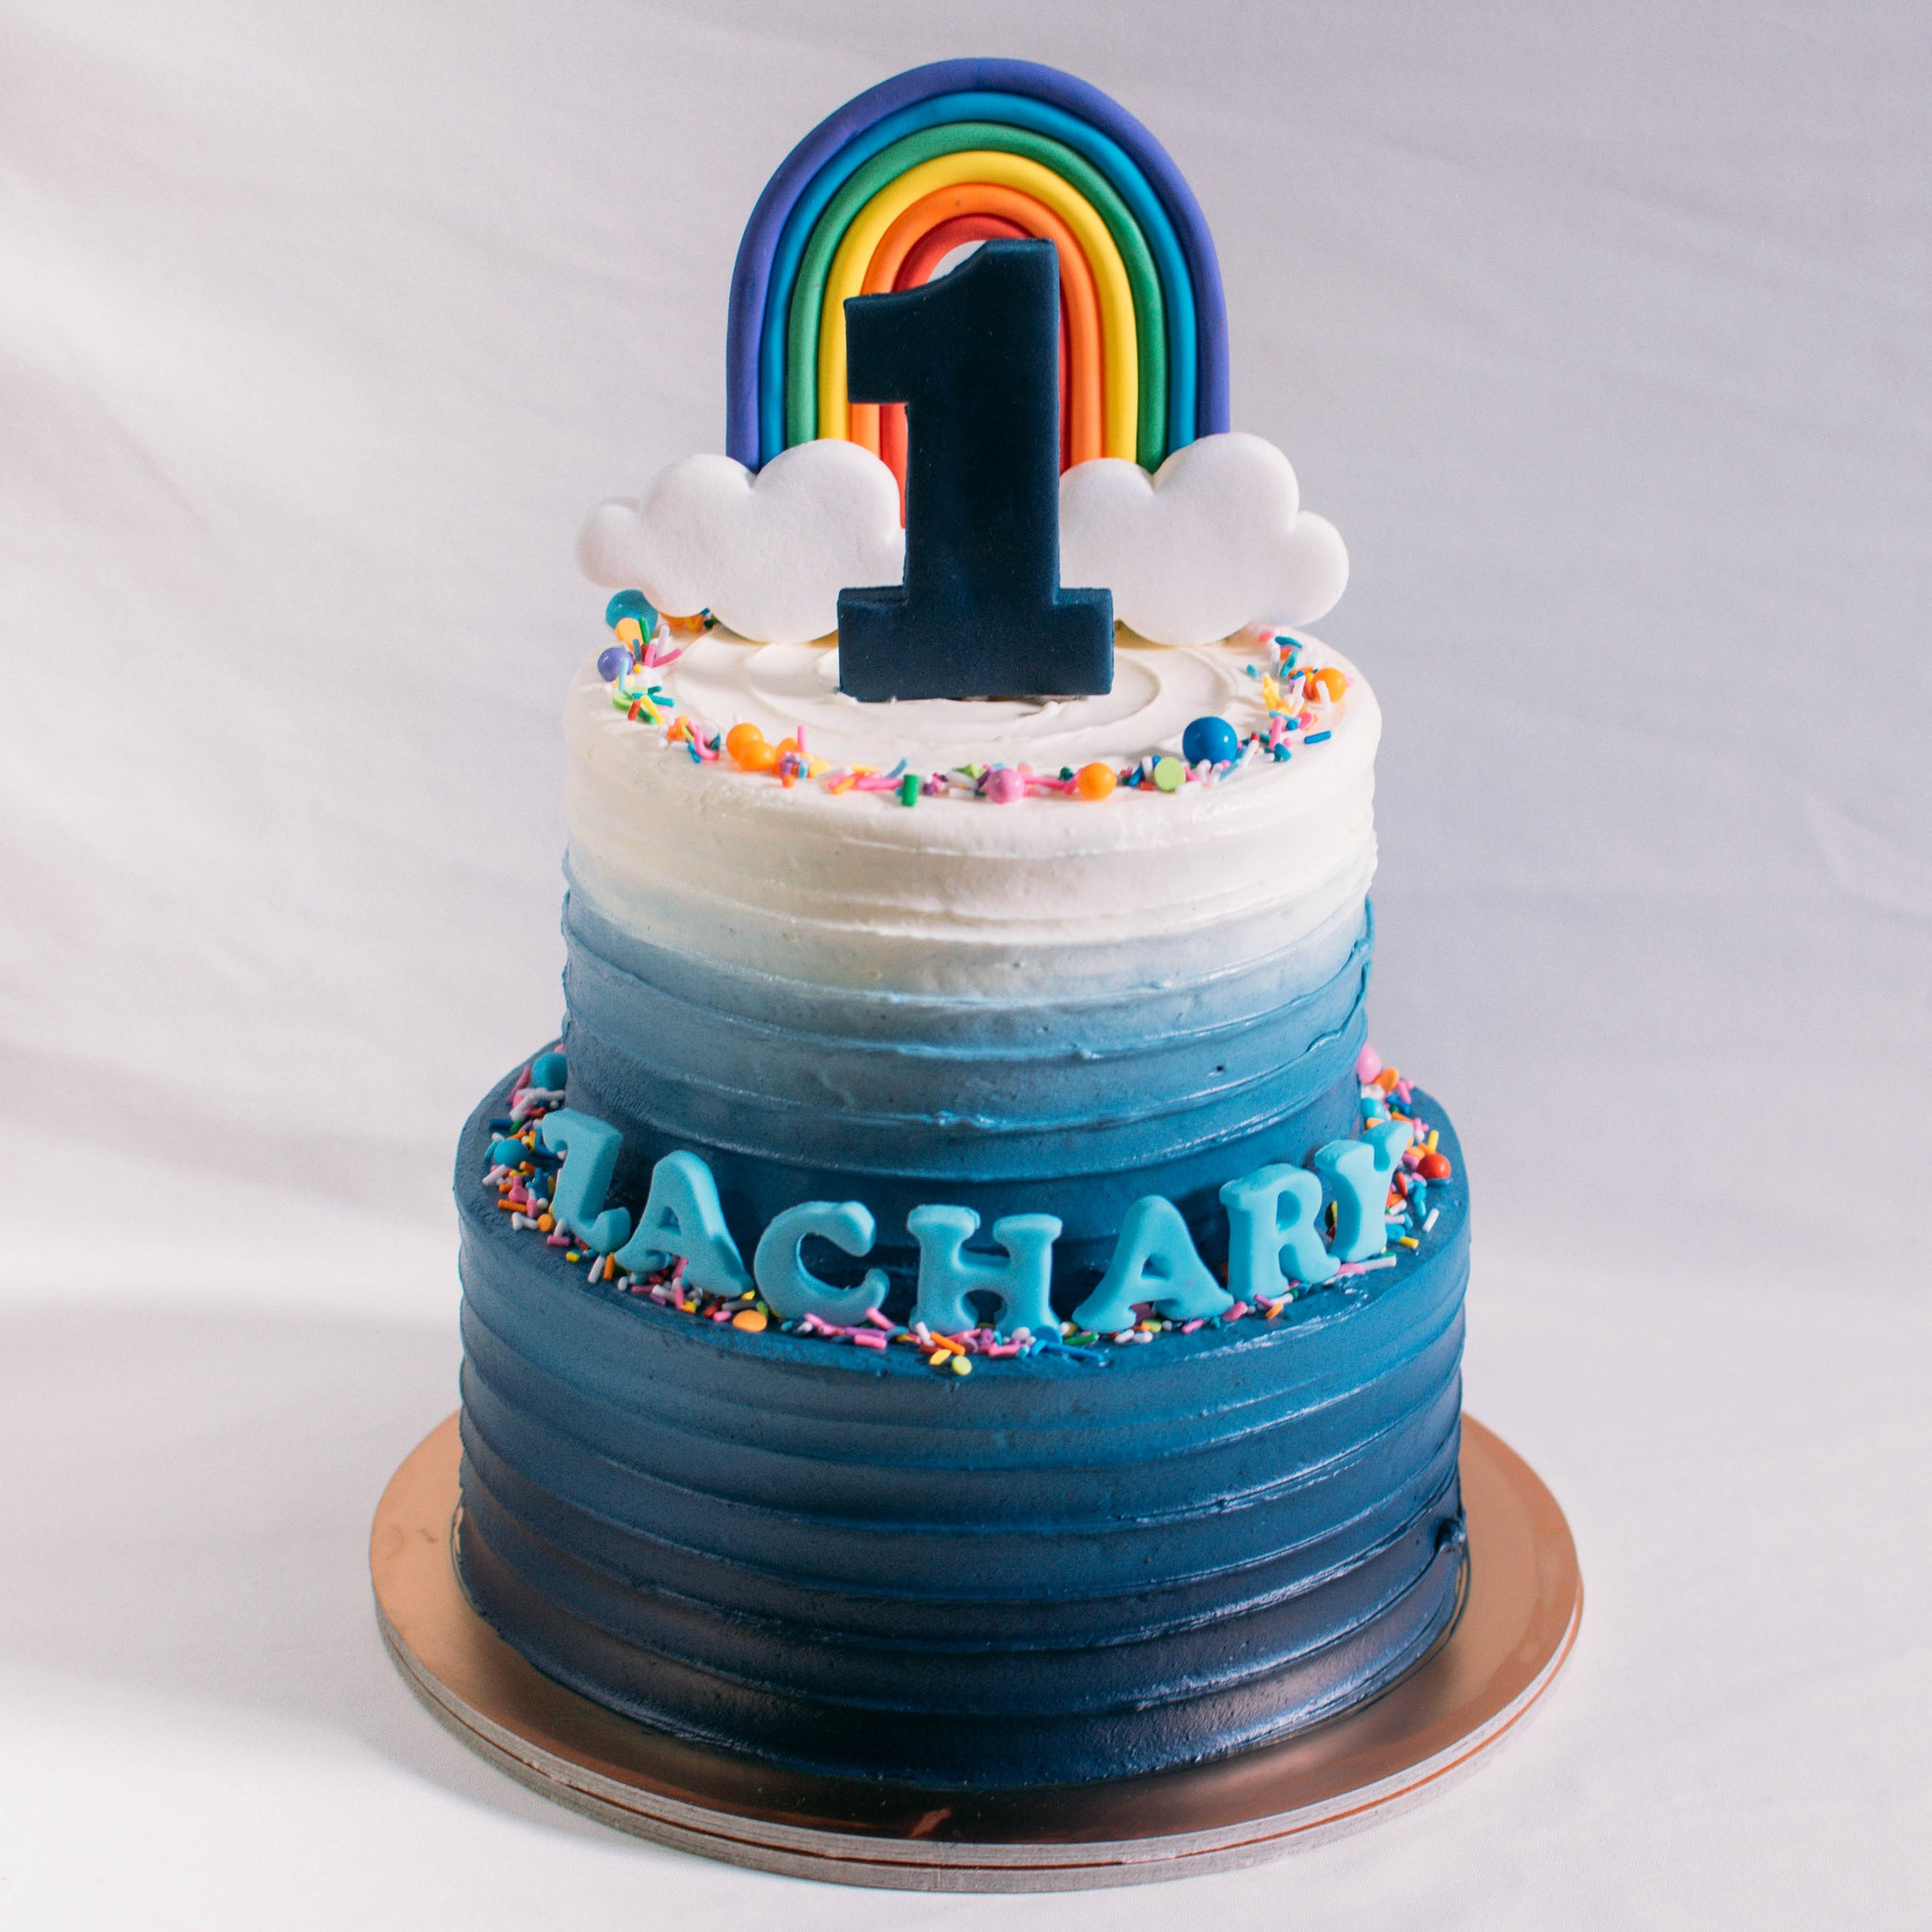 Two-Tier Ombre with Rainbow Decor - Custom Bakes by Edith Patisserie